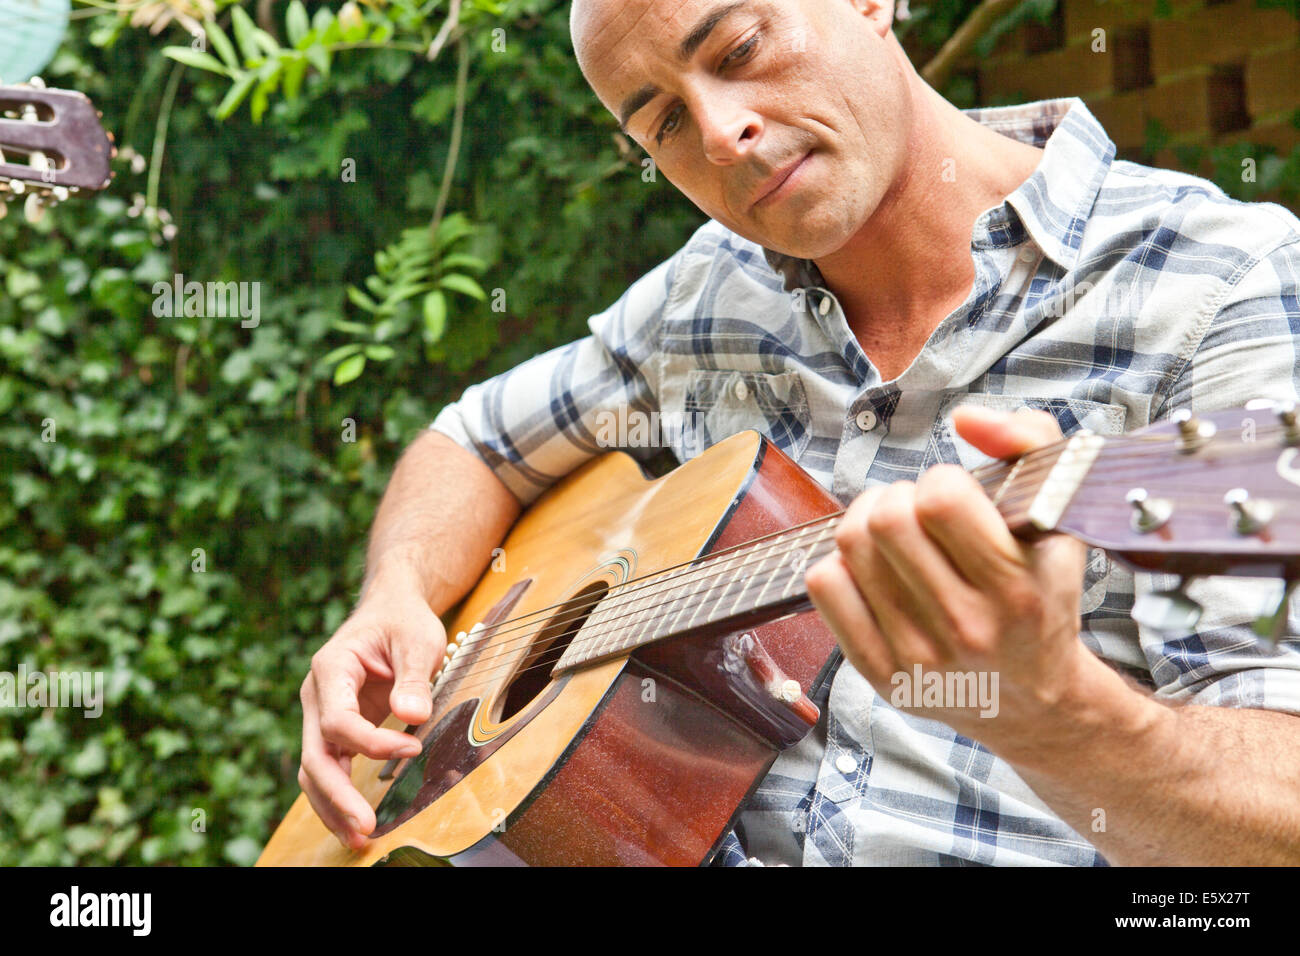 Mid adult man playing acoustic guitar in garden Photo Stock